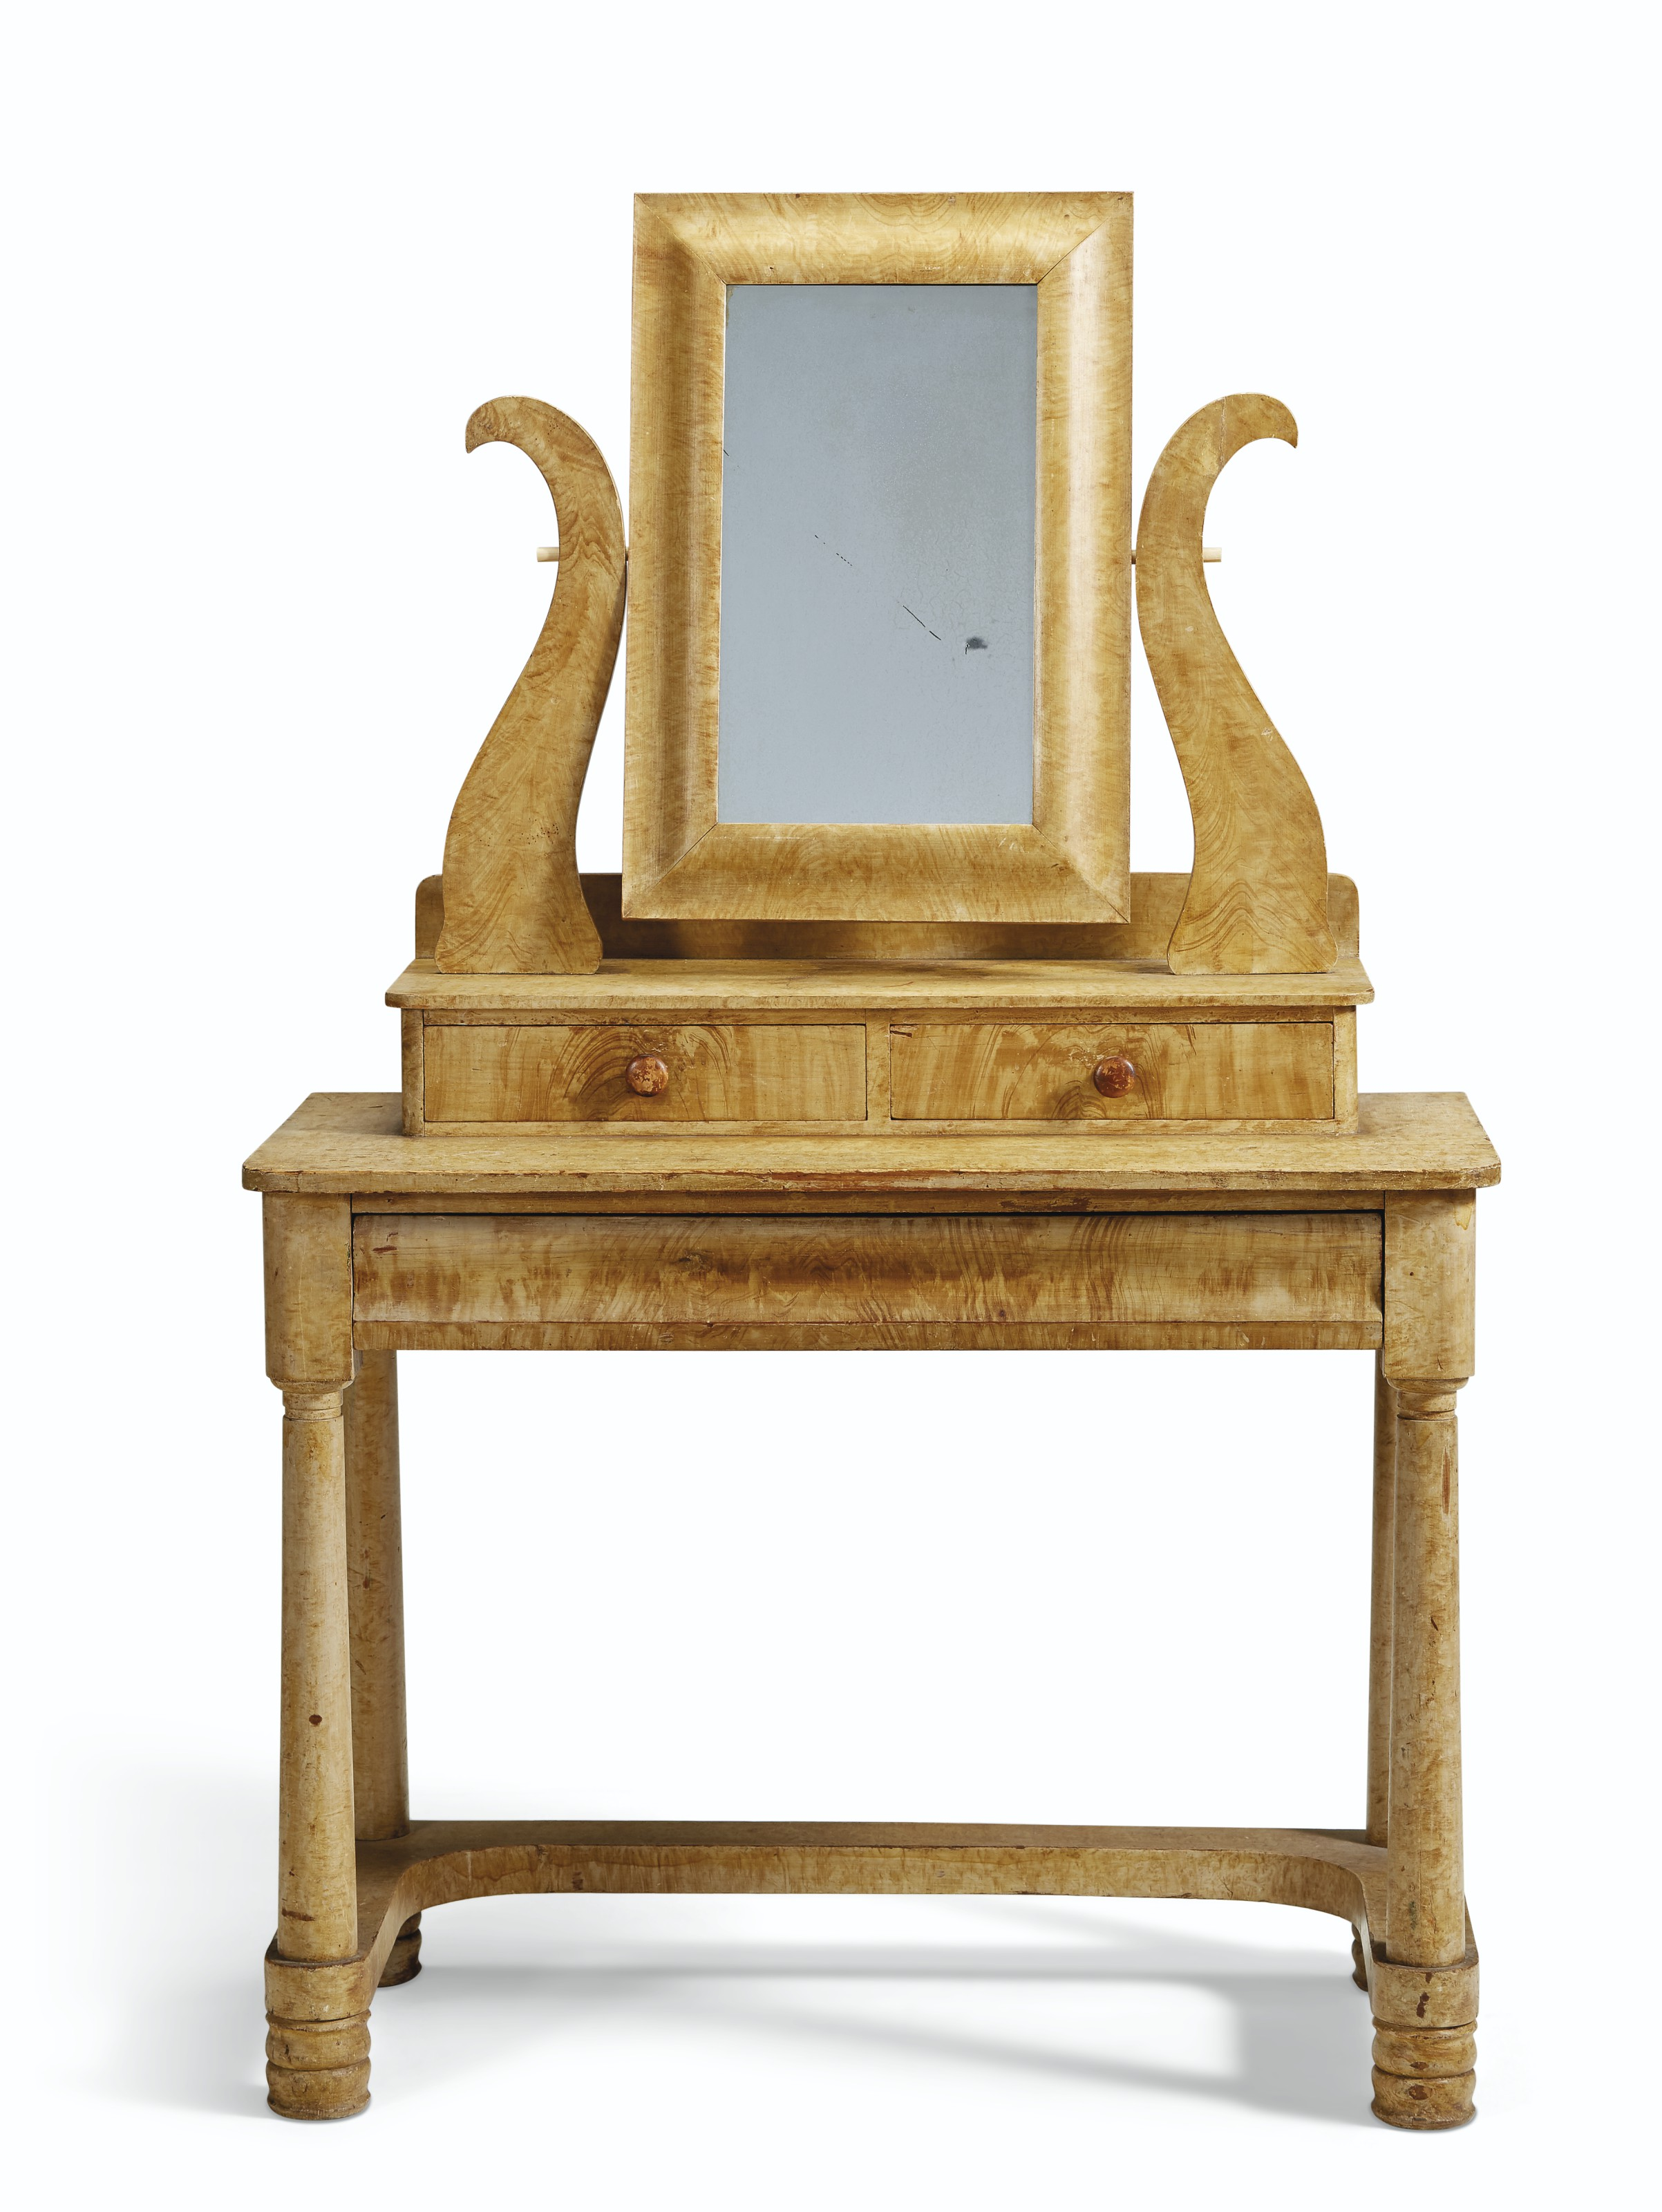 A GRAIN-PAINTED PINE DRESSING TABLE WITH LYRE-FORM MIRROR HOLDER